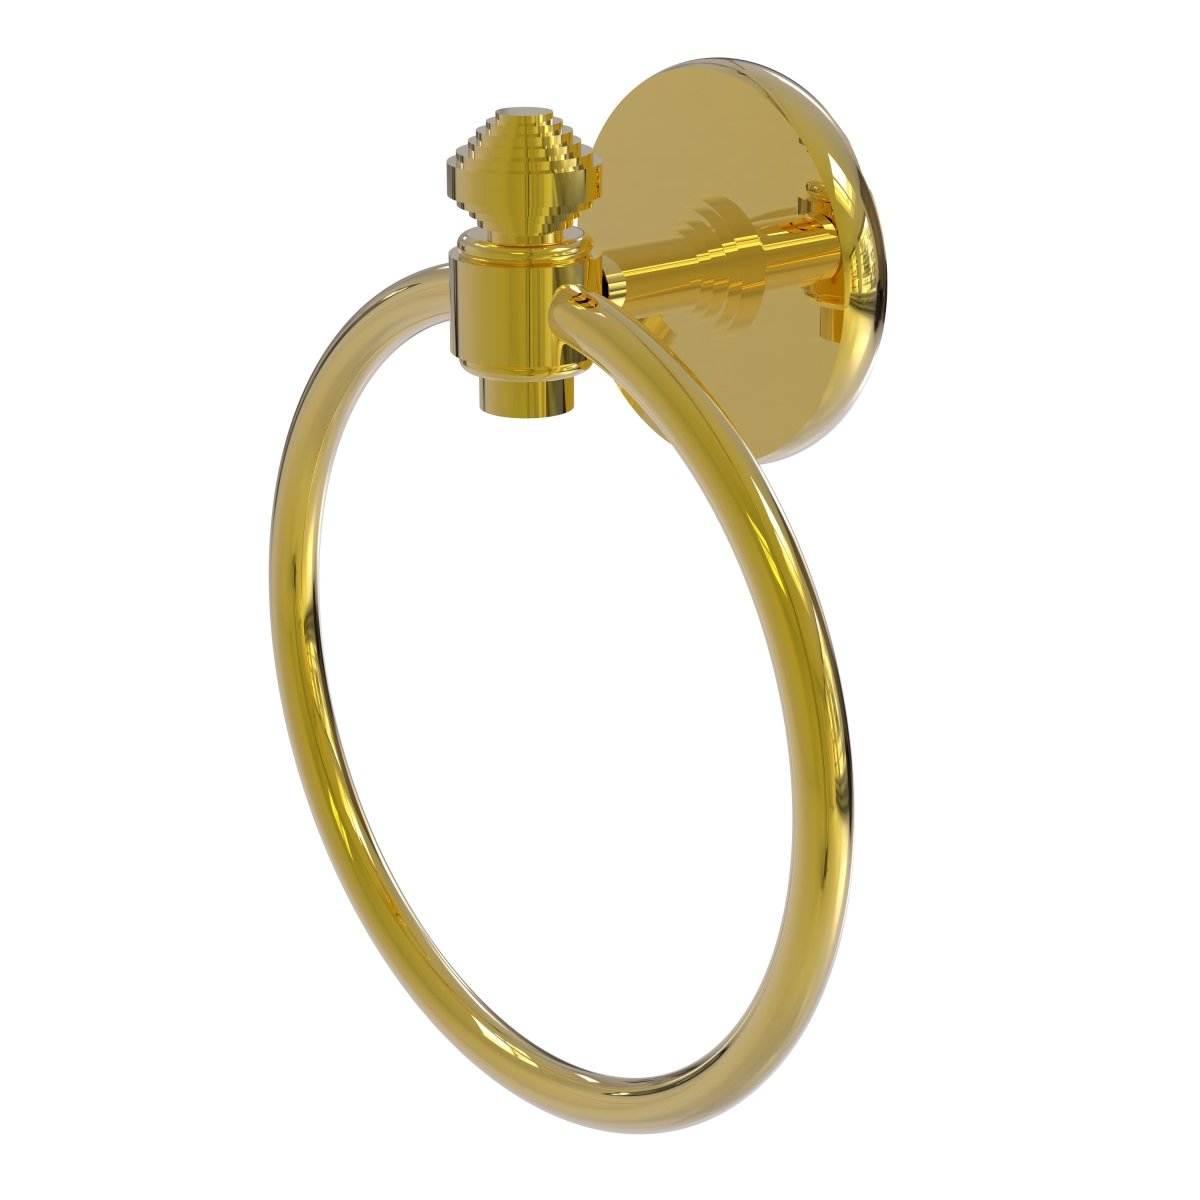 (Unlacquered Brass) Allied Brass South Beach Wall Mounted Towel Ring B06XB1HZWSラッカーなし真鍮